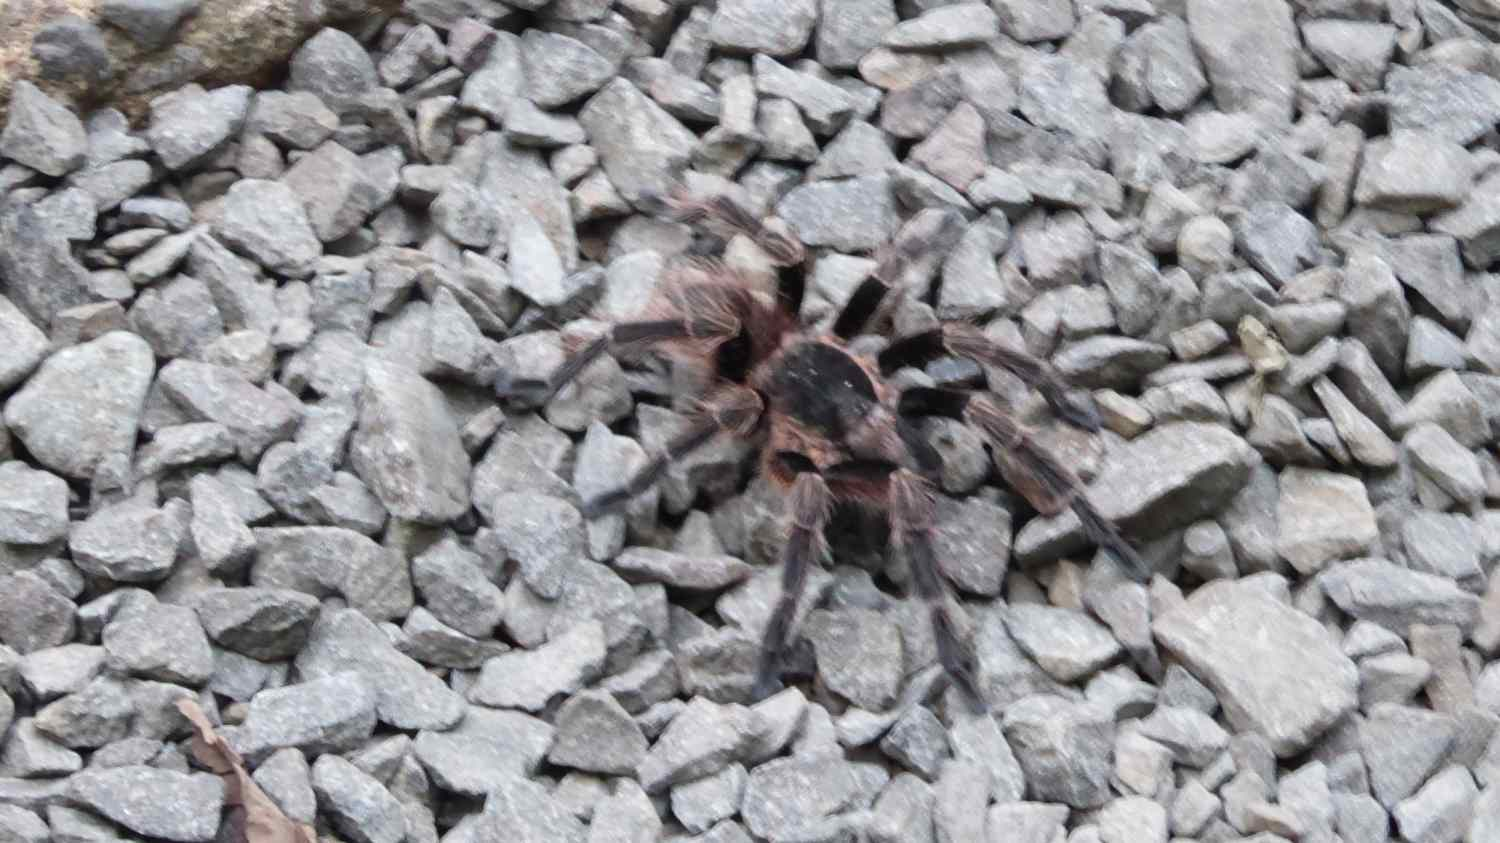 Tarantula on the path